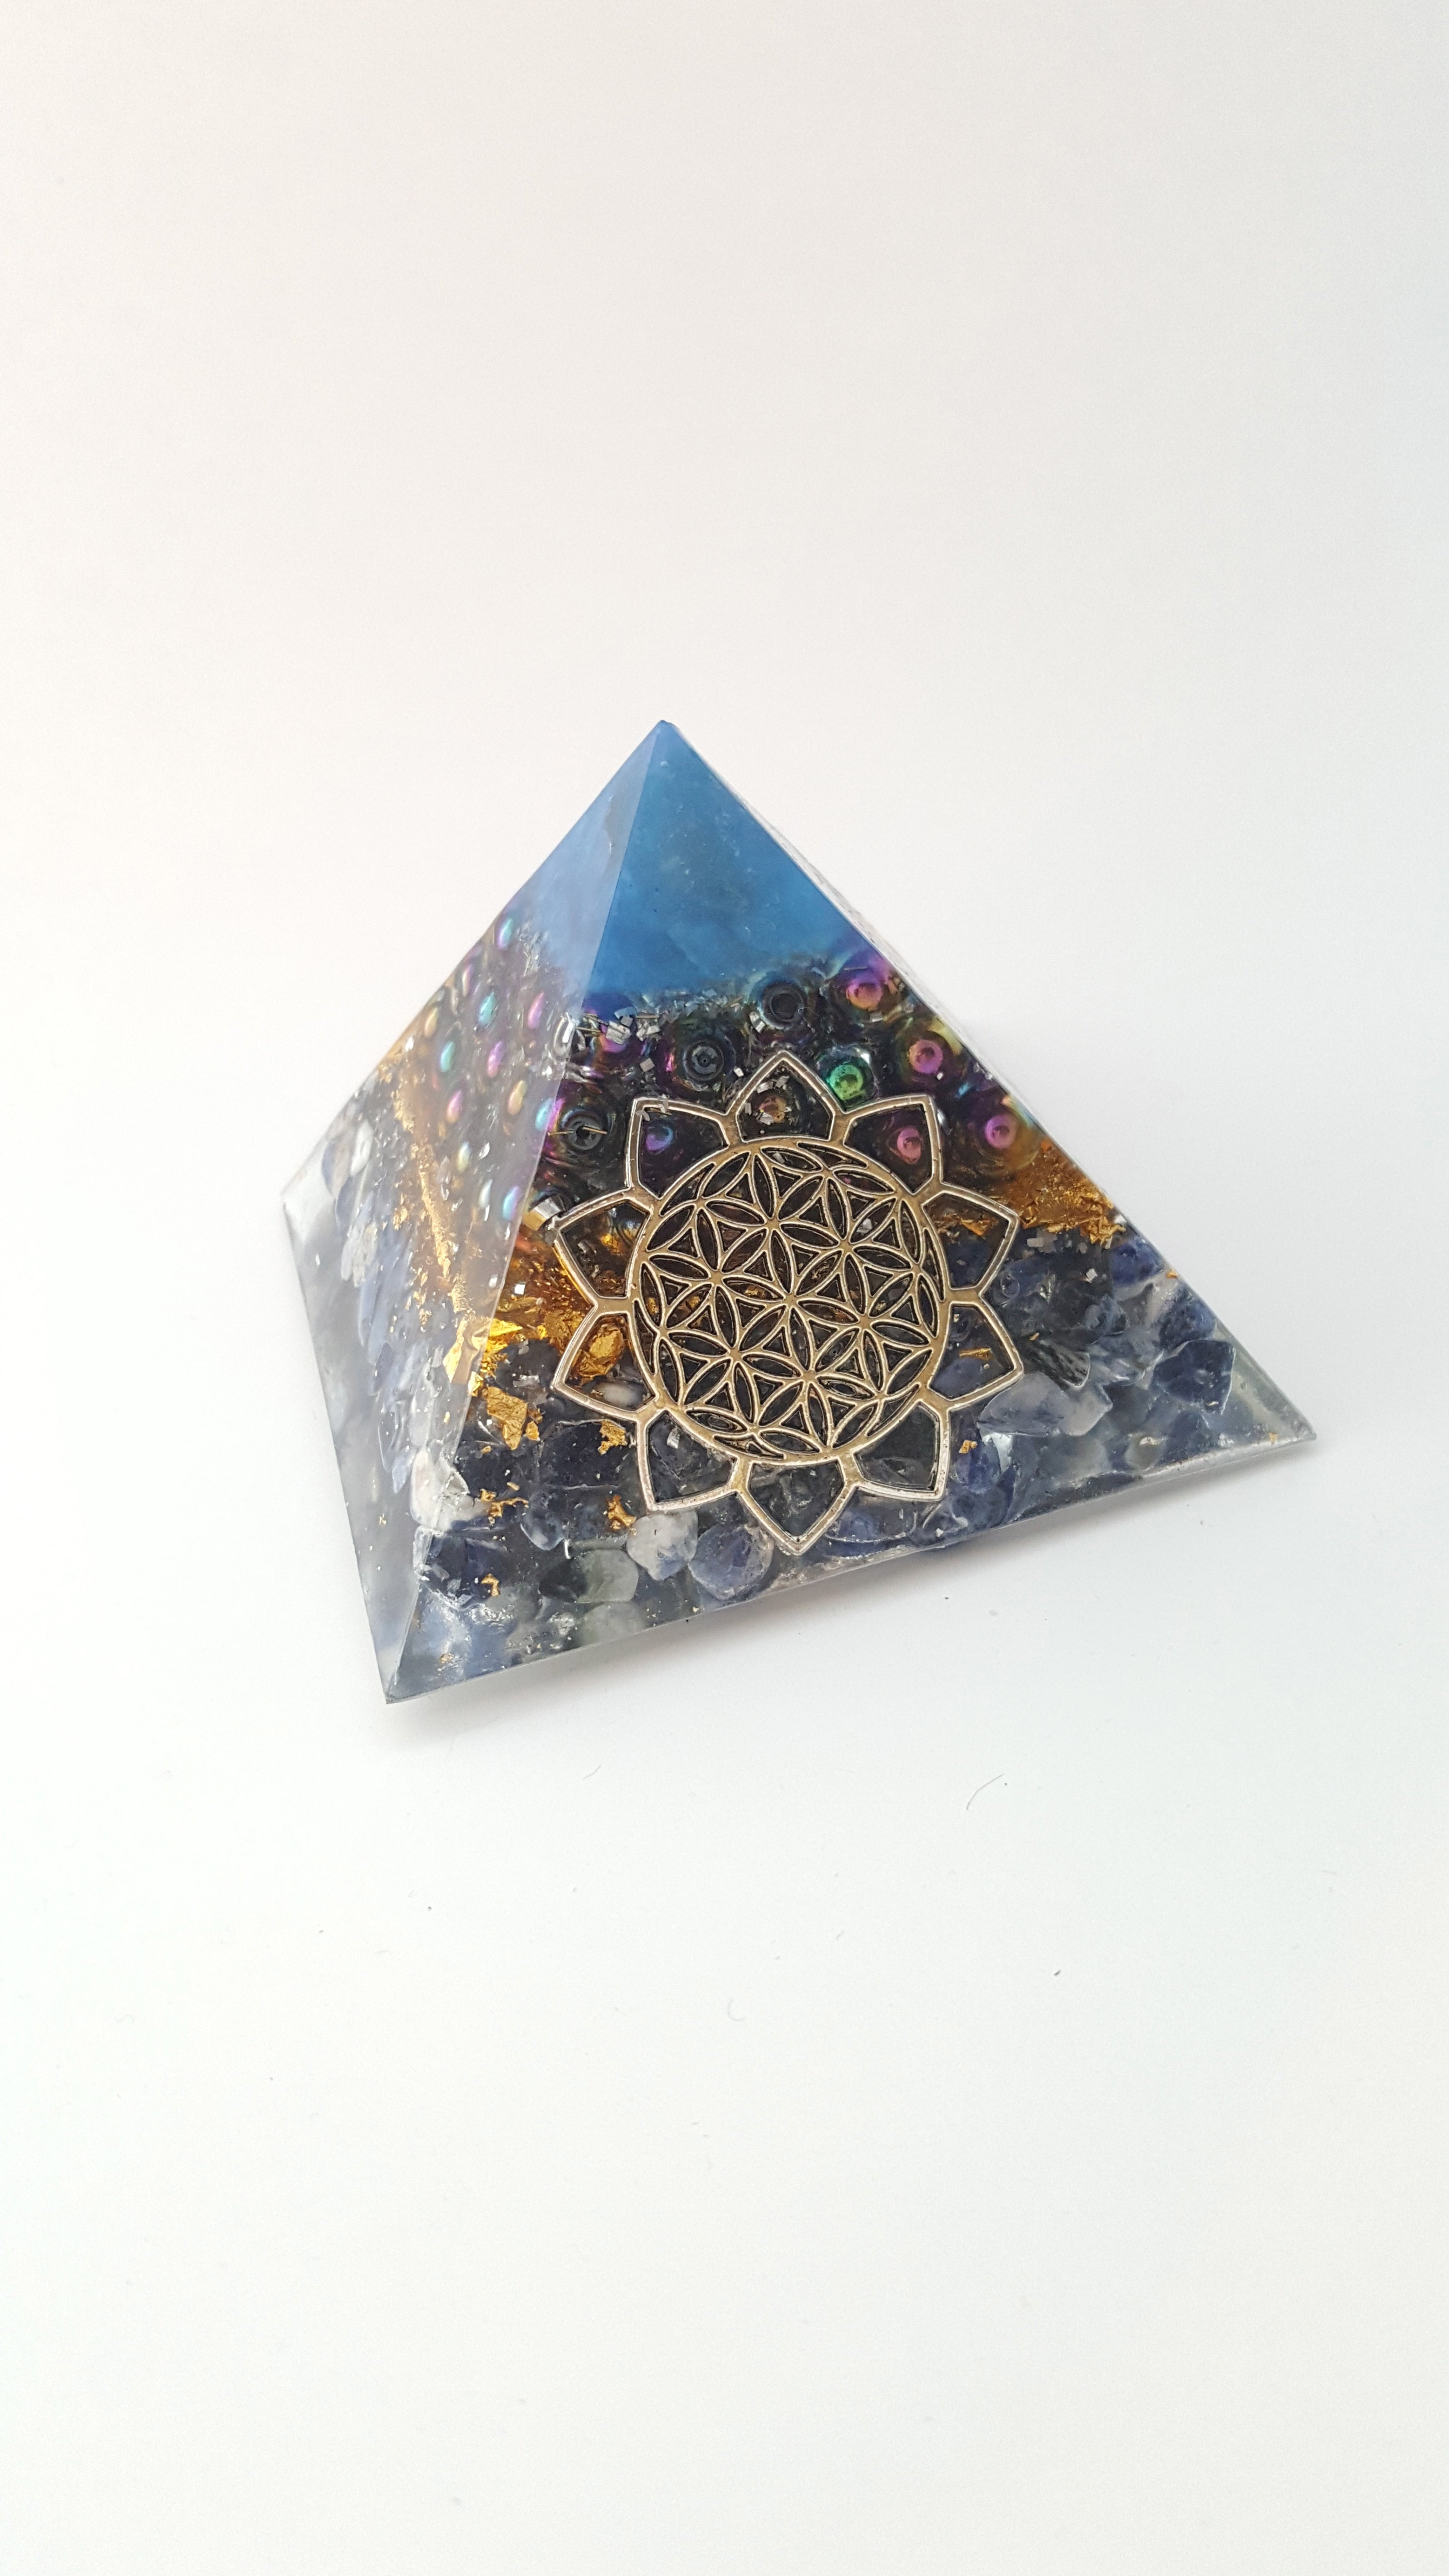 Chi Enhancing Pyramid — Large Blue Rainbow Hematite with Flower of Life